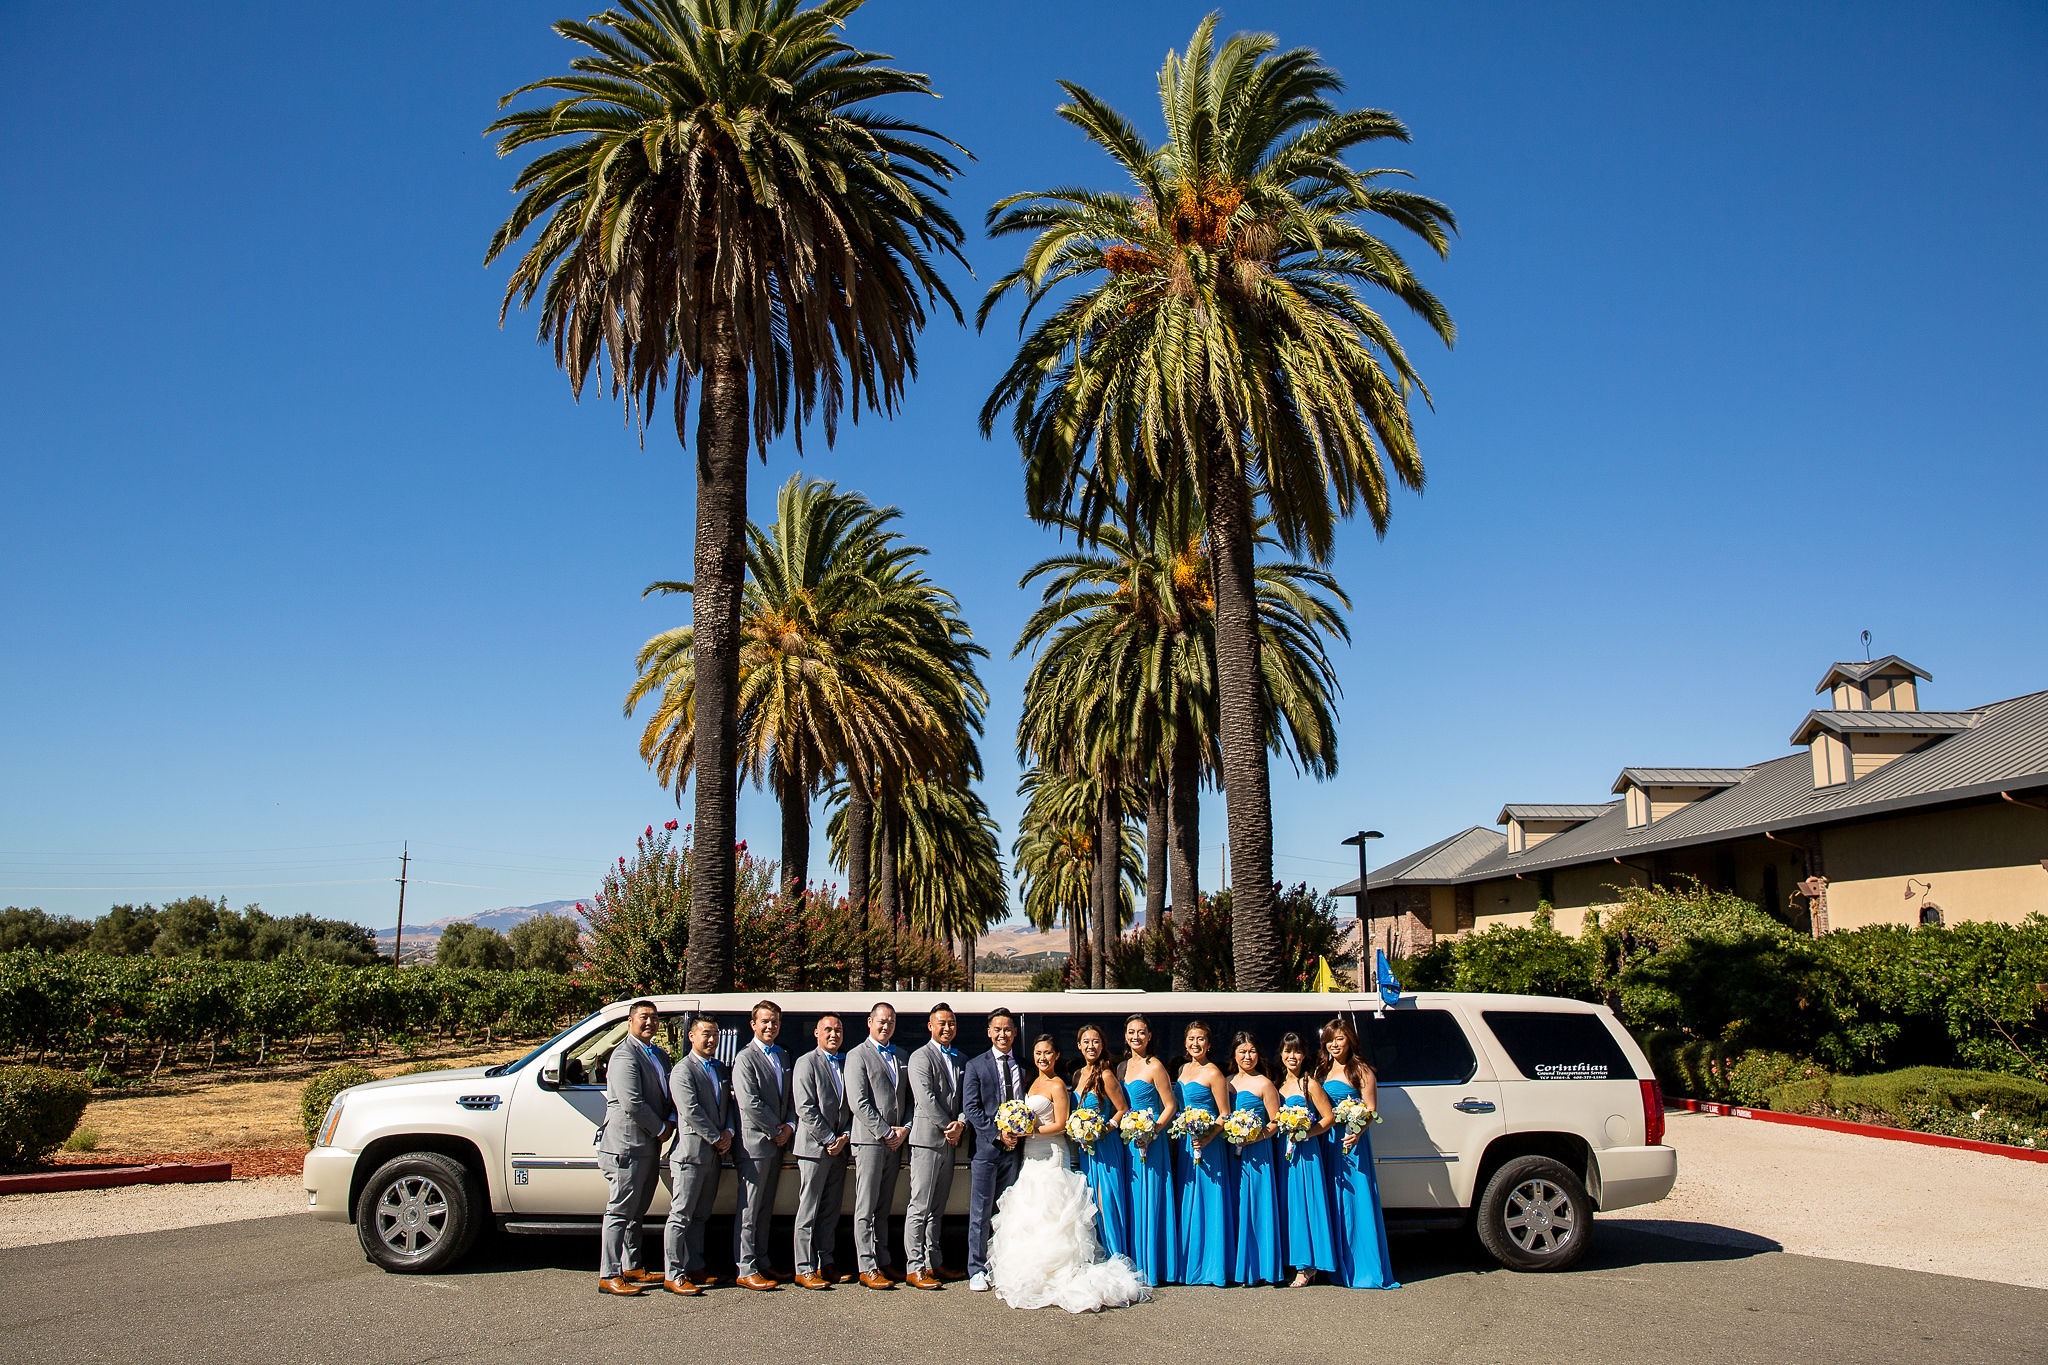 Corinthian Limo had the best limos and awesome limo drivers! The double rows of palm trees are signature to the Palm Event Center in the Vineyard (duh)